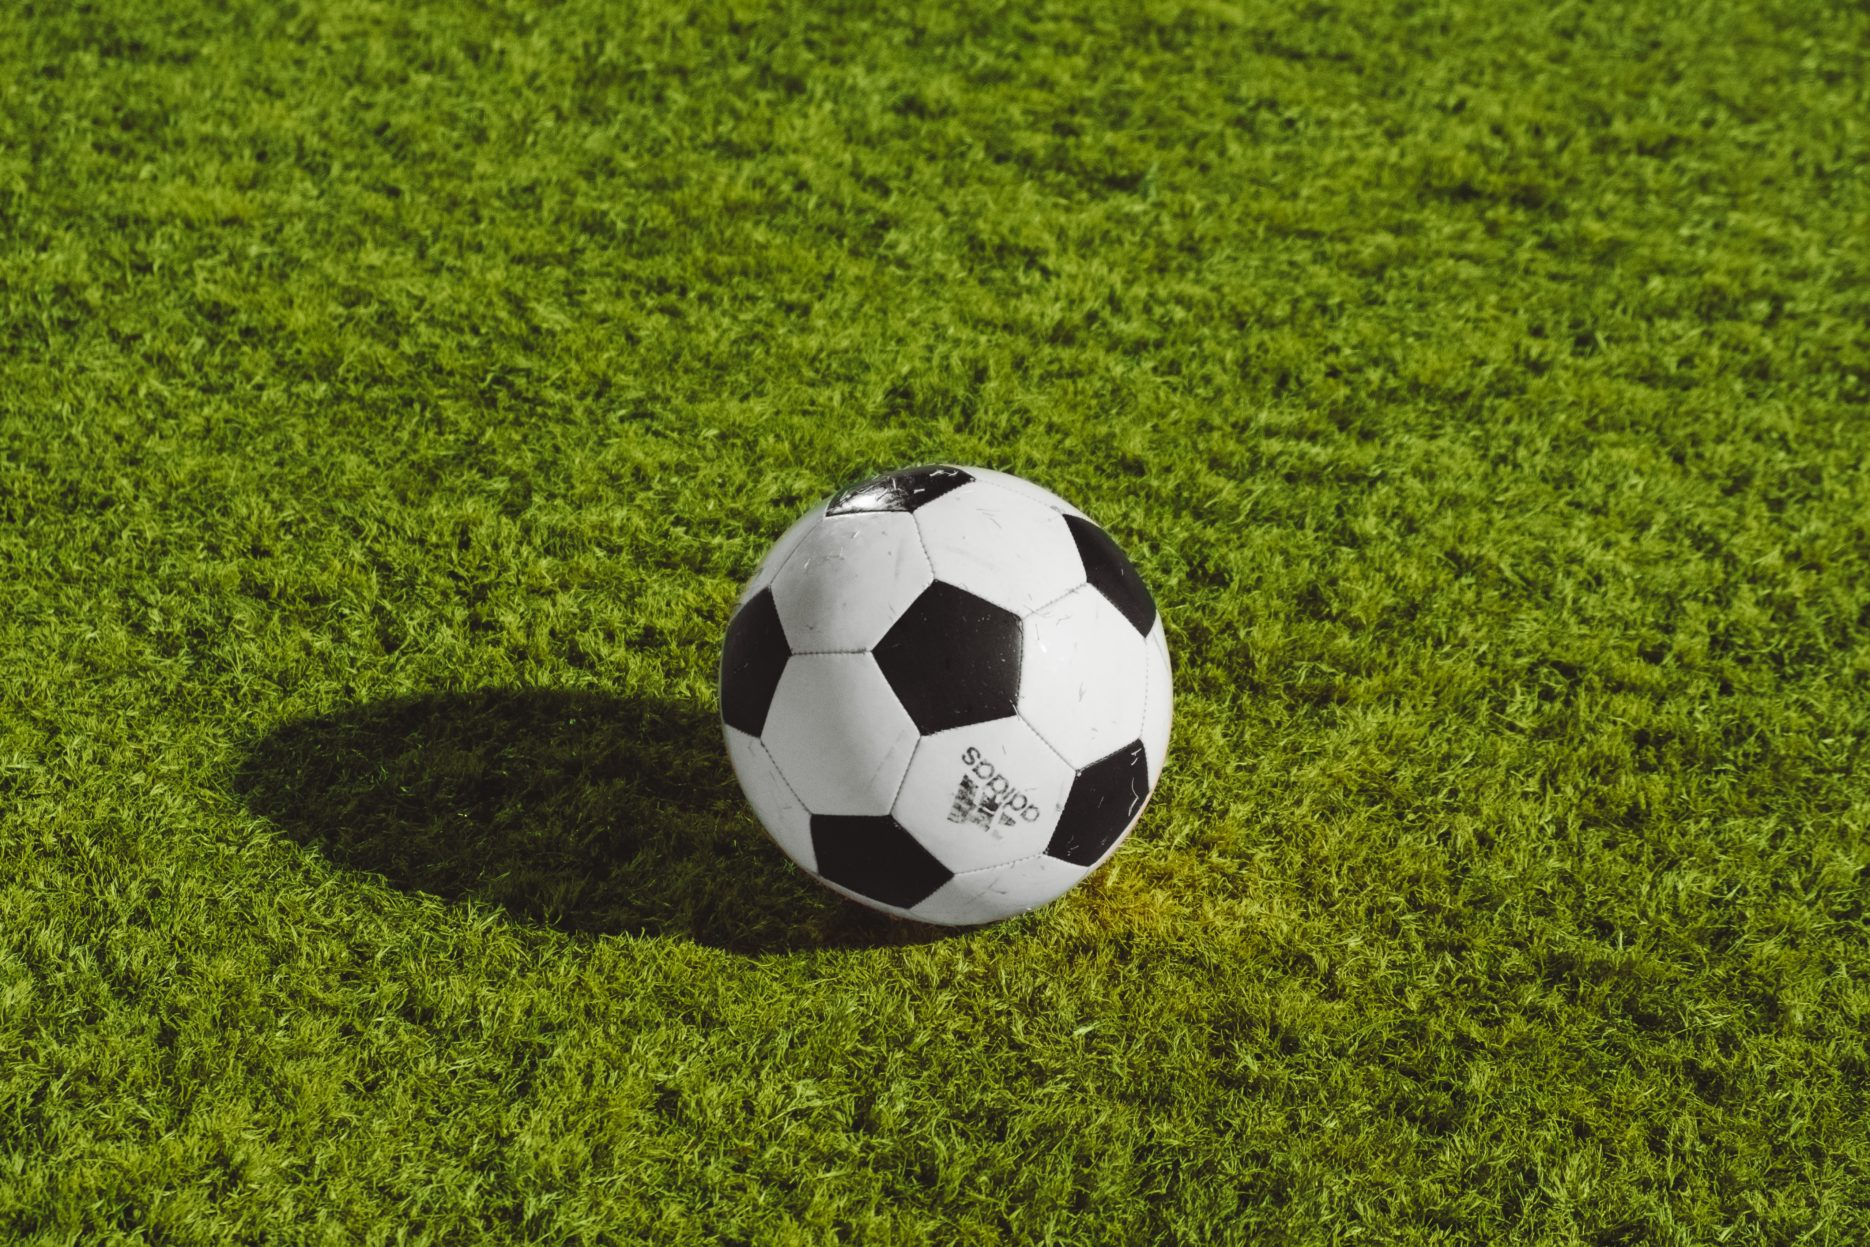 Football on green playing field